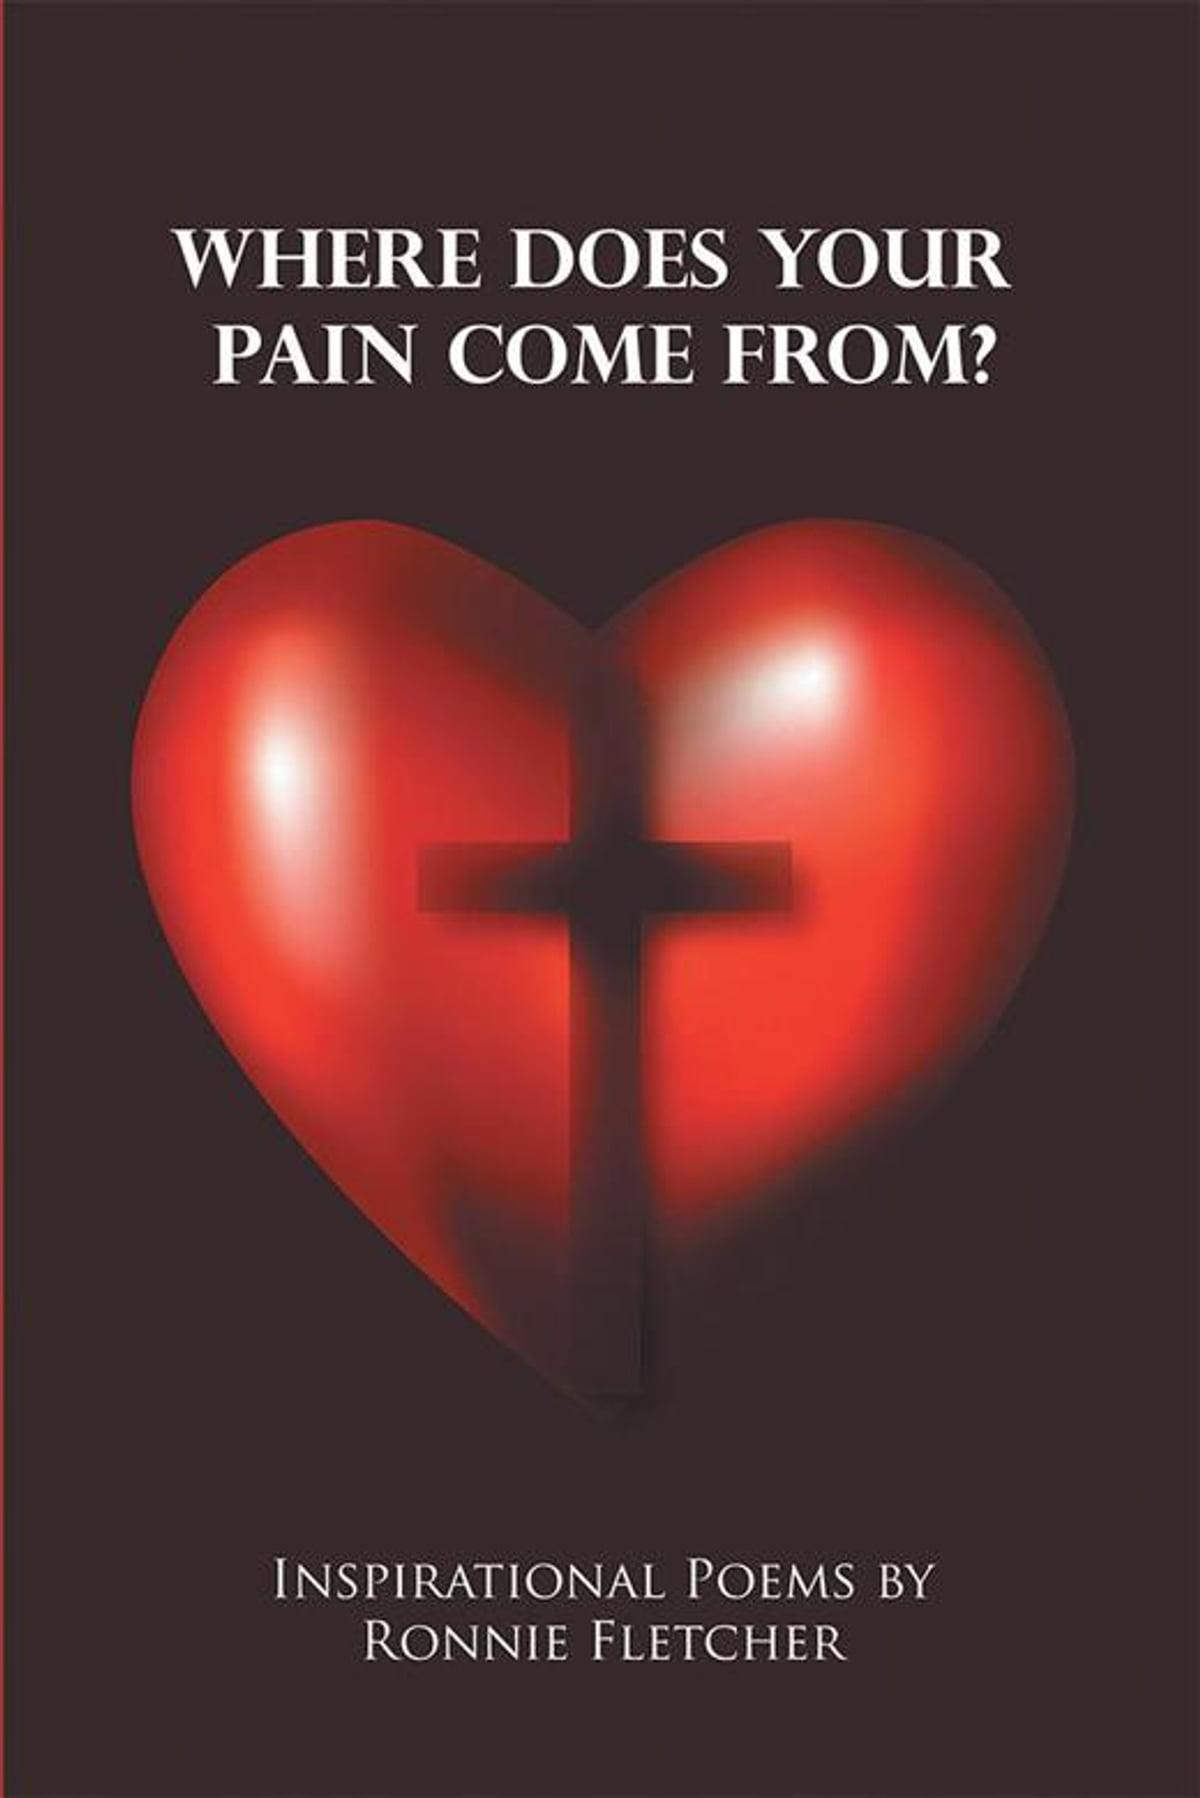 Where Does Your Pain Come From Ebook By Ronnie Fletcher